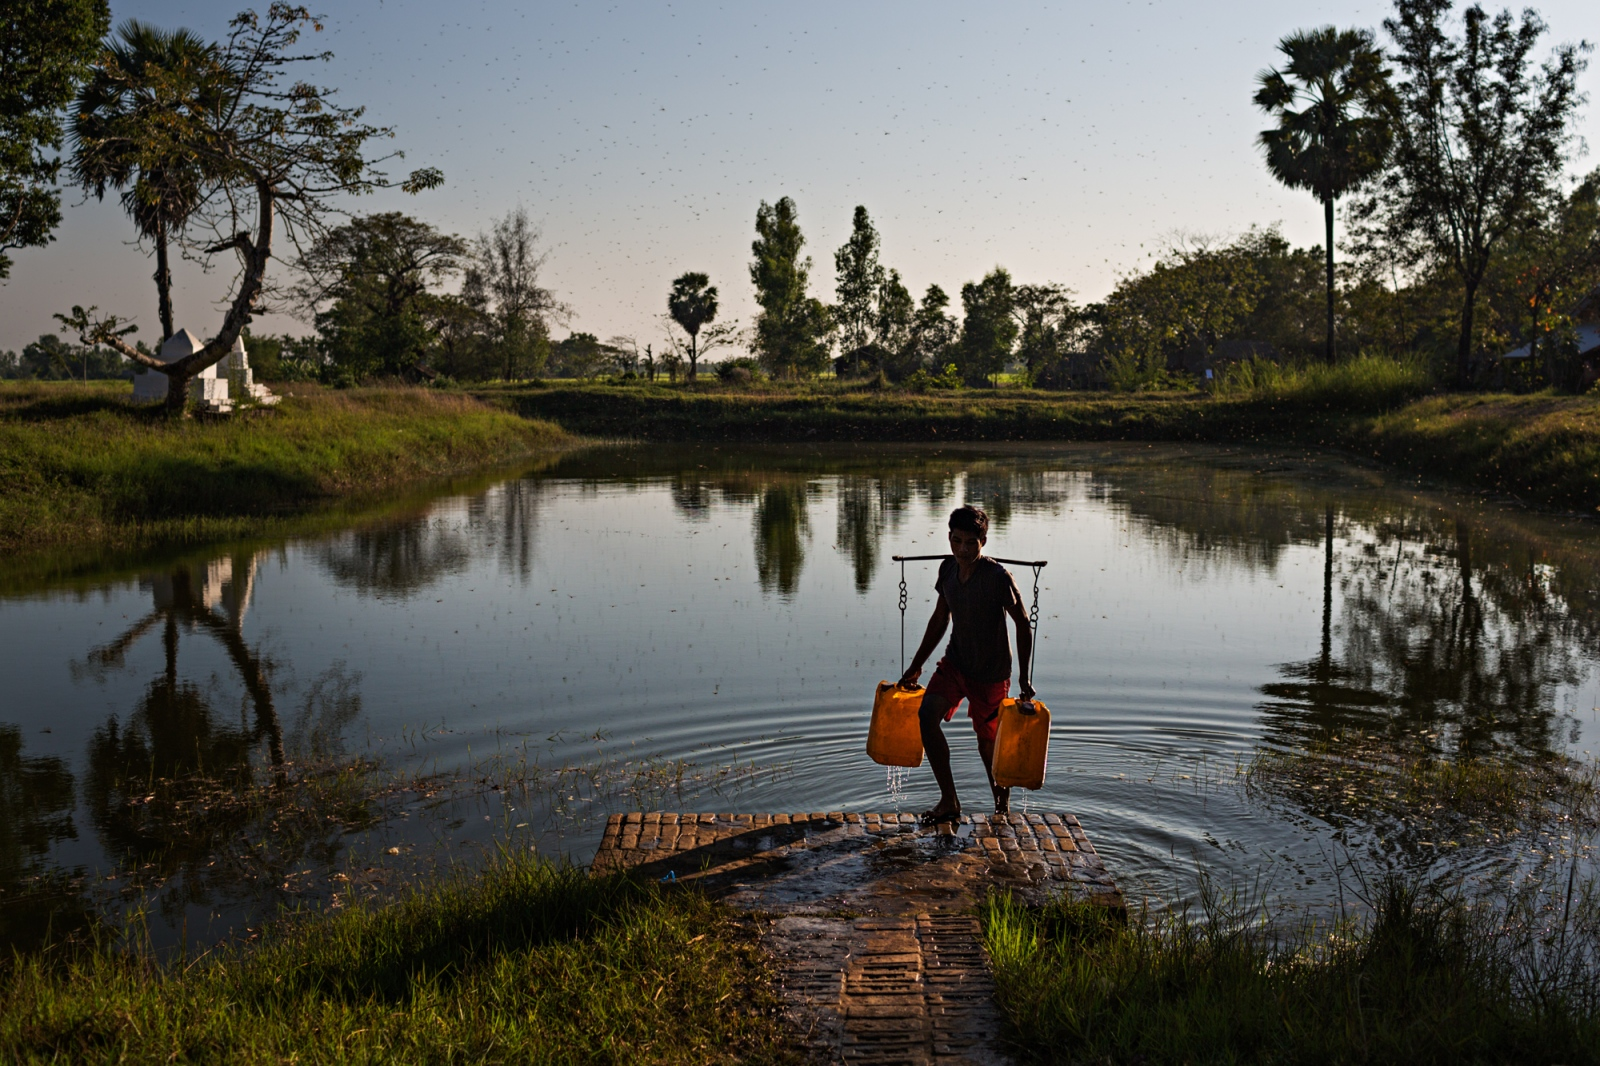 A villager gathers water from a local resevoir near Pathein.